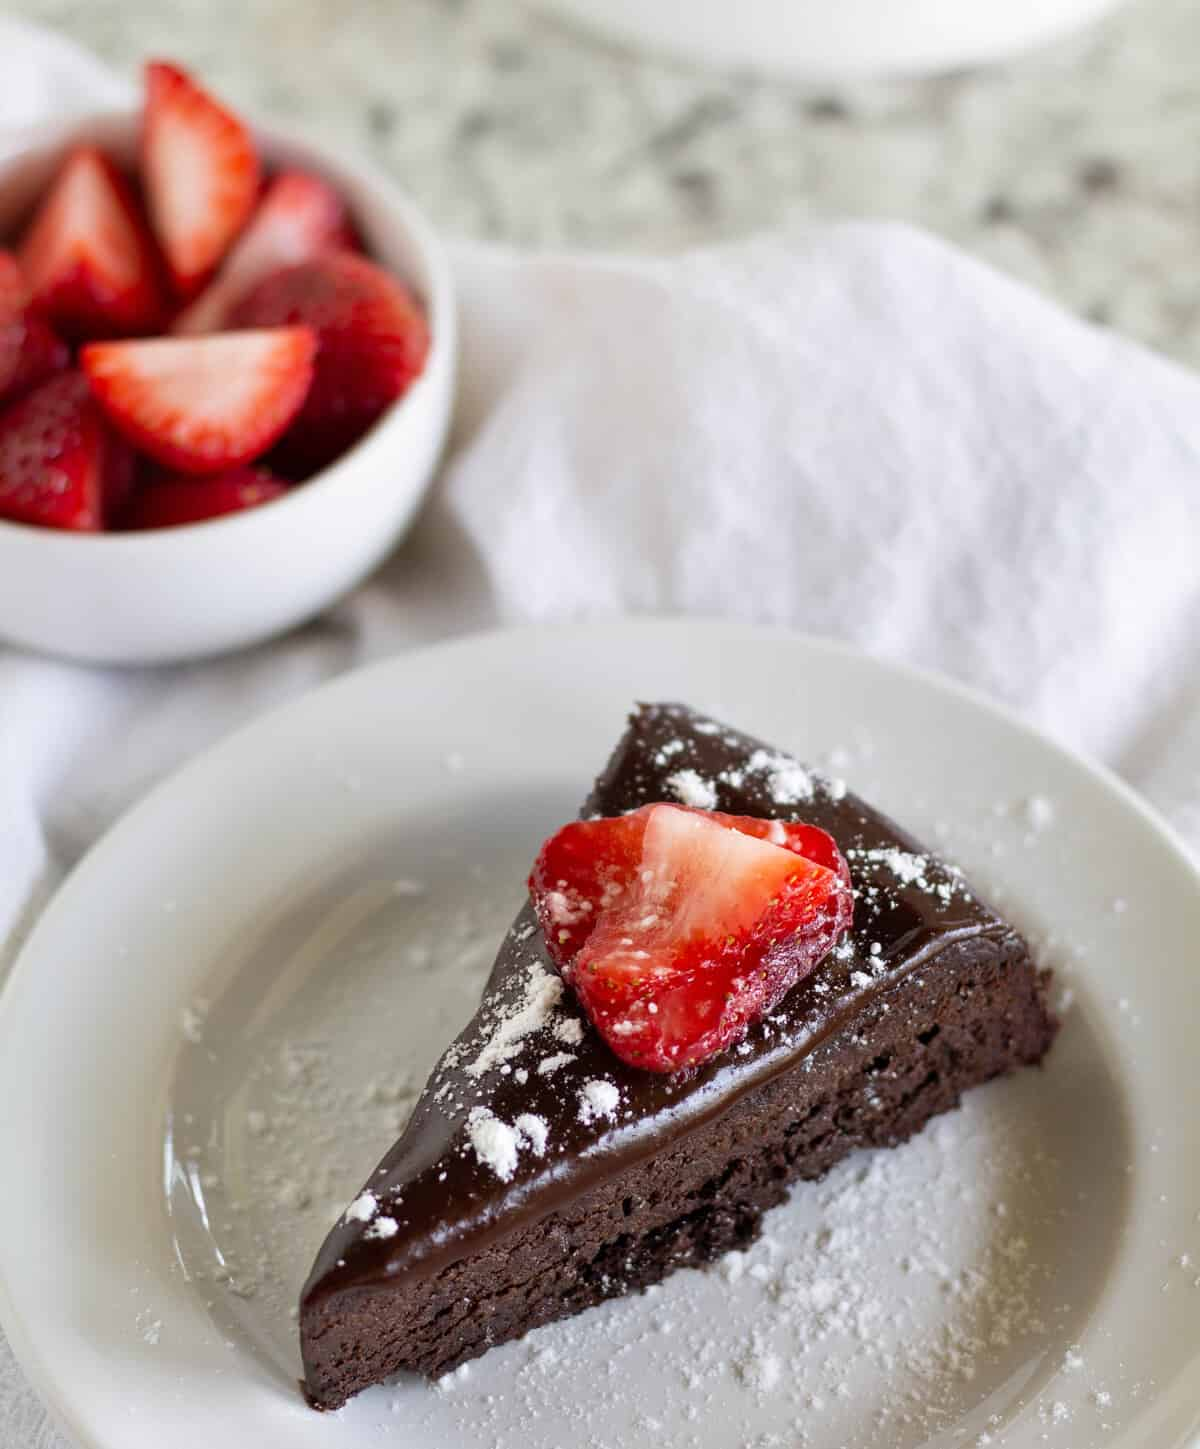 slice of cake with strawberries on white plate